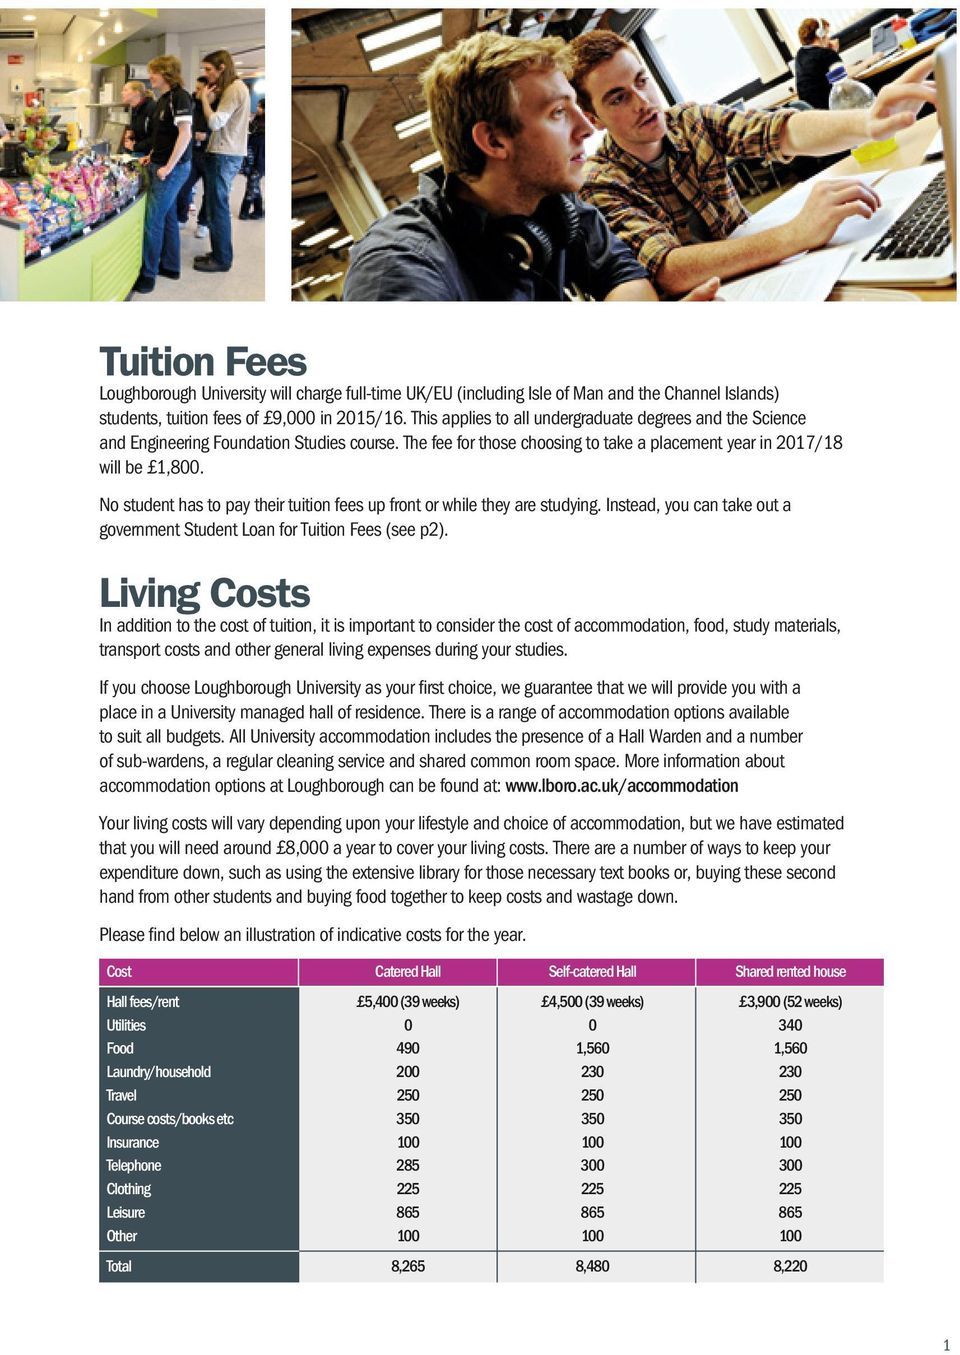 No student has to pay their tuition fees up front or while they are studying. Instead, you can take out a government Student Loan for Tuition Fees (see p2).